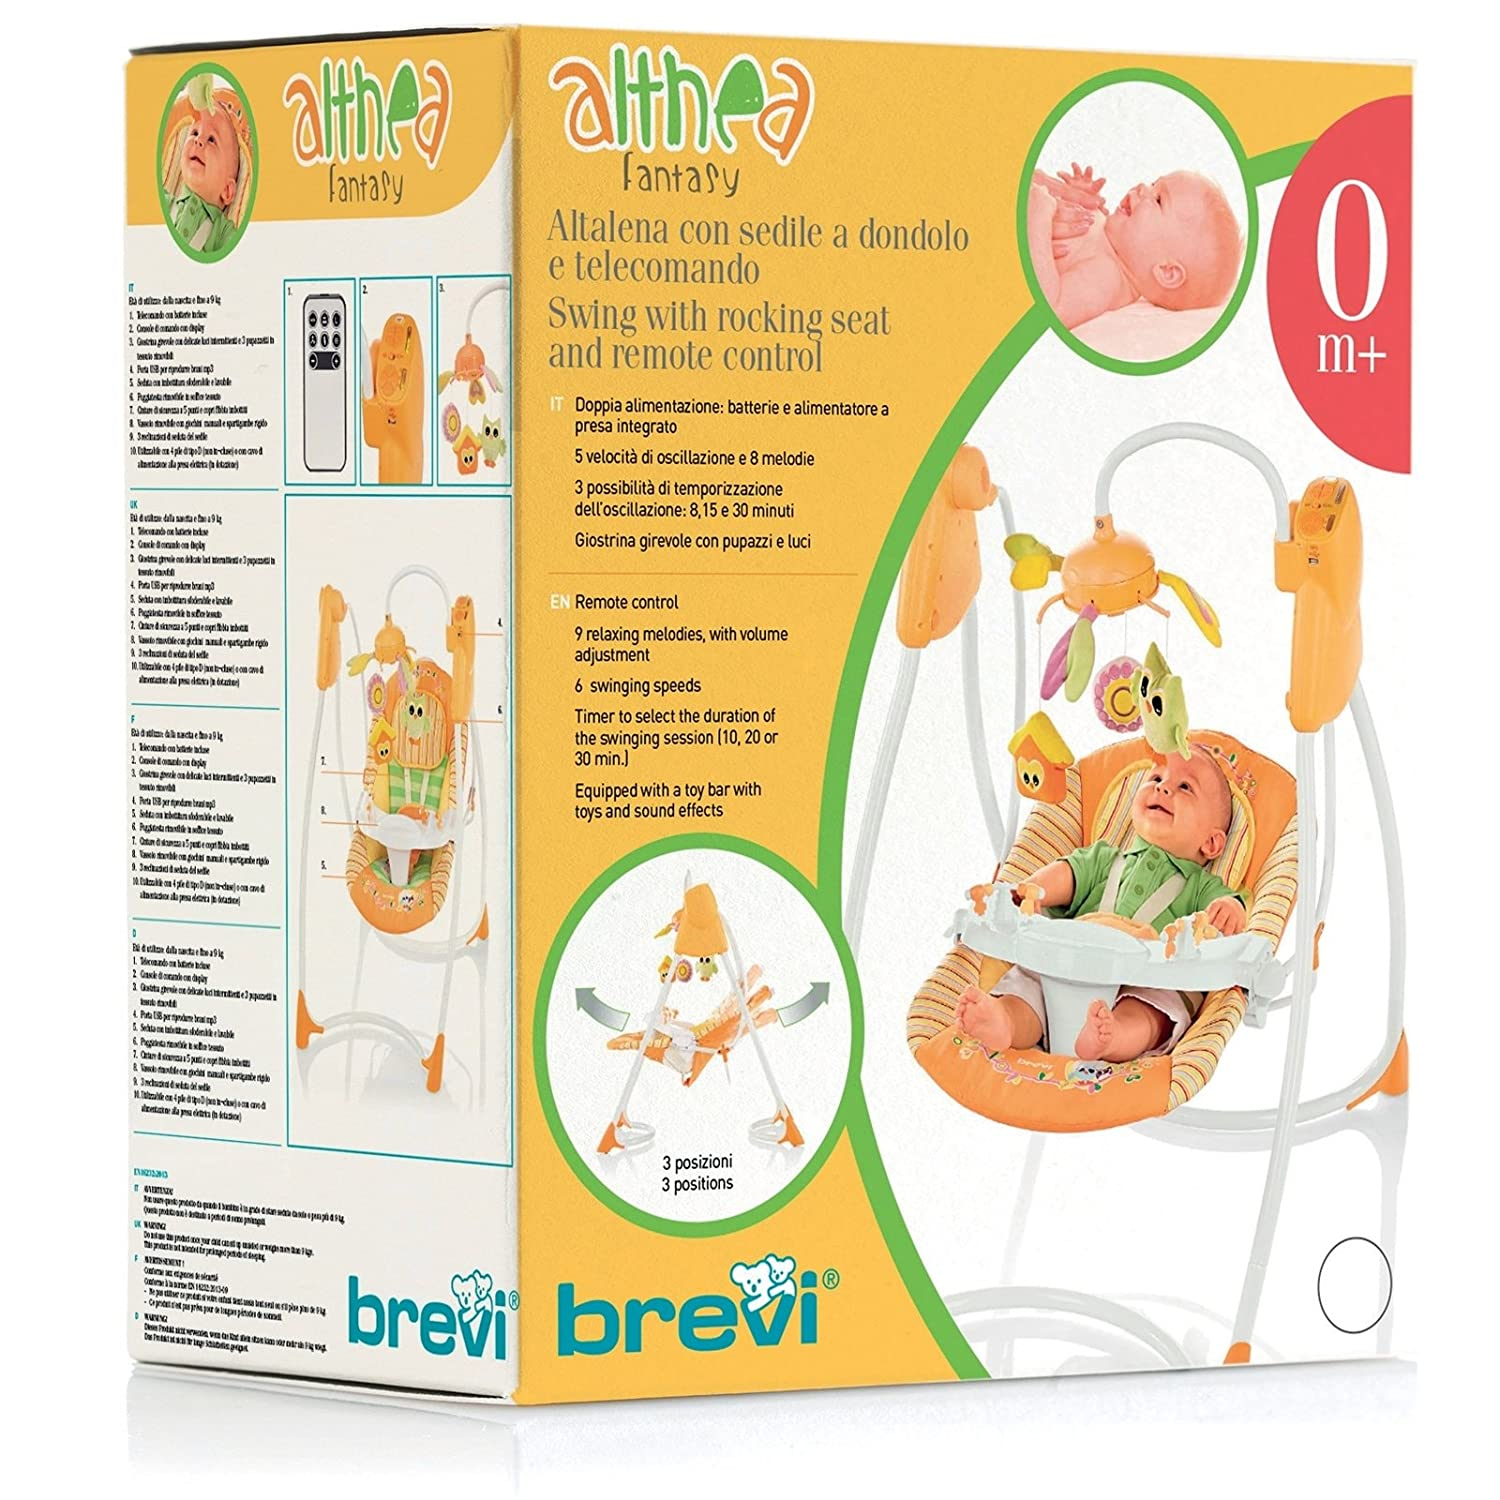 Brevi altalena Altea Design Fantasy multicolore Amazon Prima infanzia